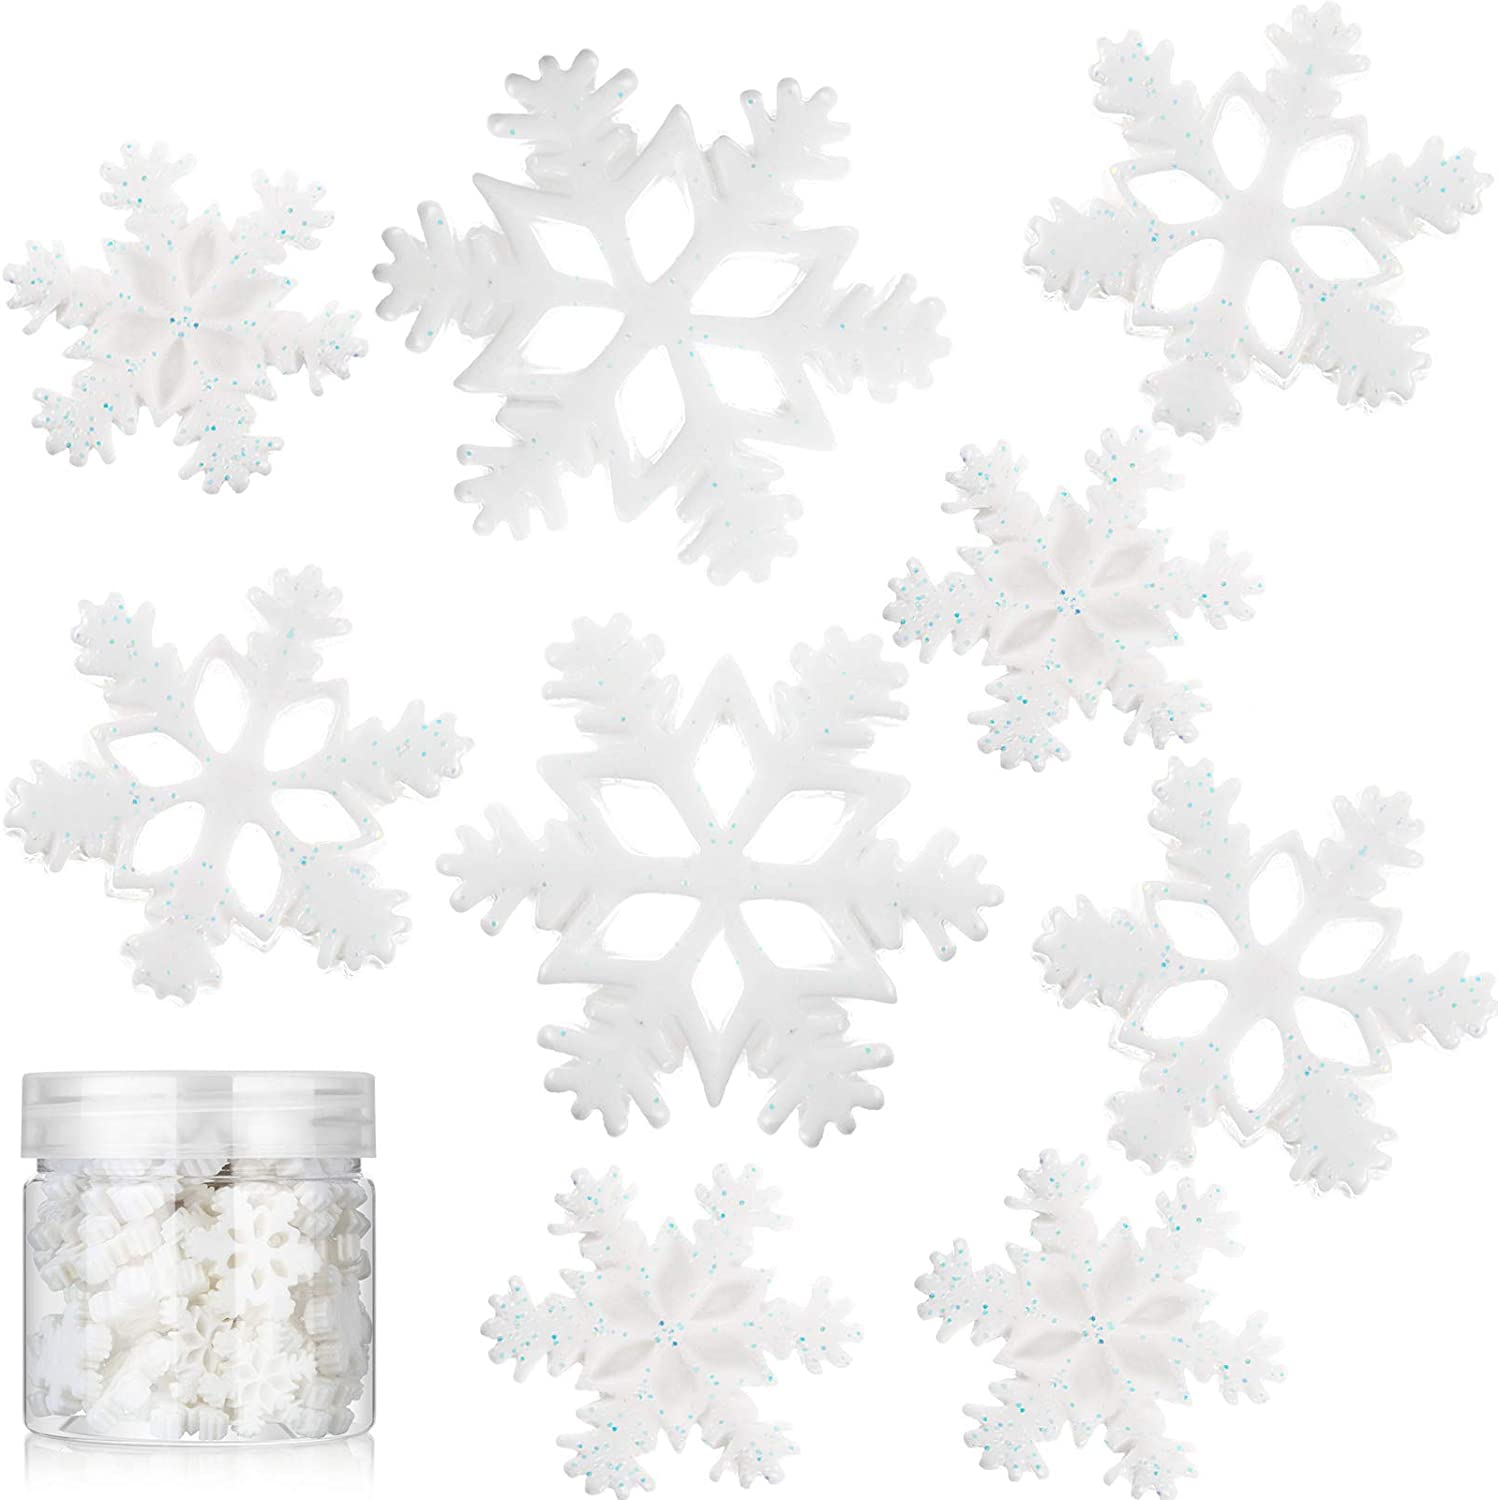 50 Pieces Tiny Resin Snowflakes Decor Christmas Party Decorations Snow Shaped Craft Embellishment with Storage Box for DIY Craft Winter Party Home Decor, 3 Sizes